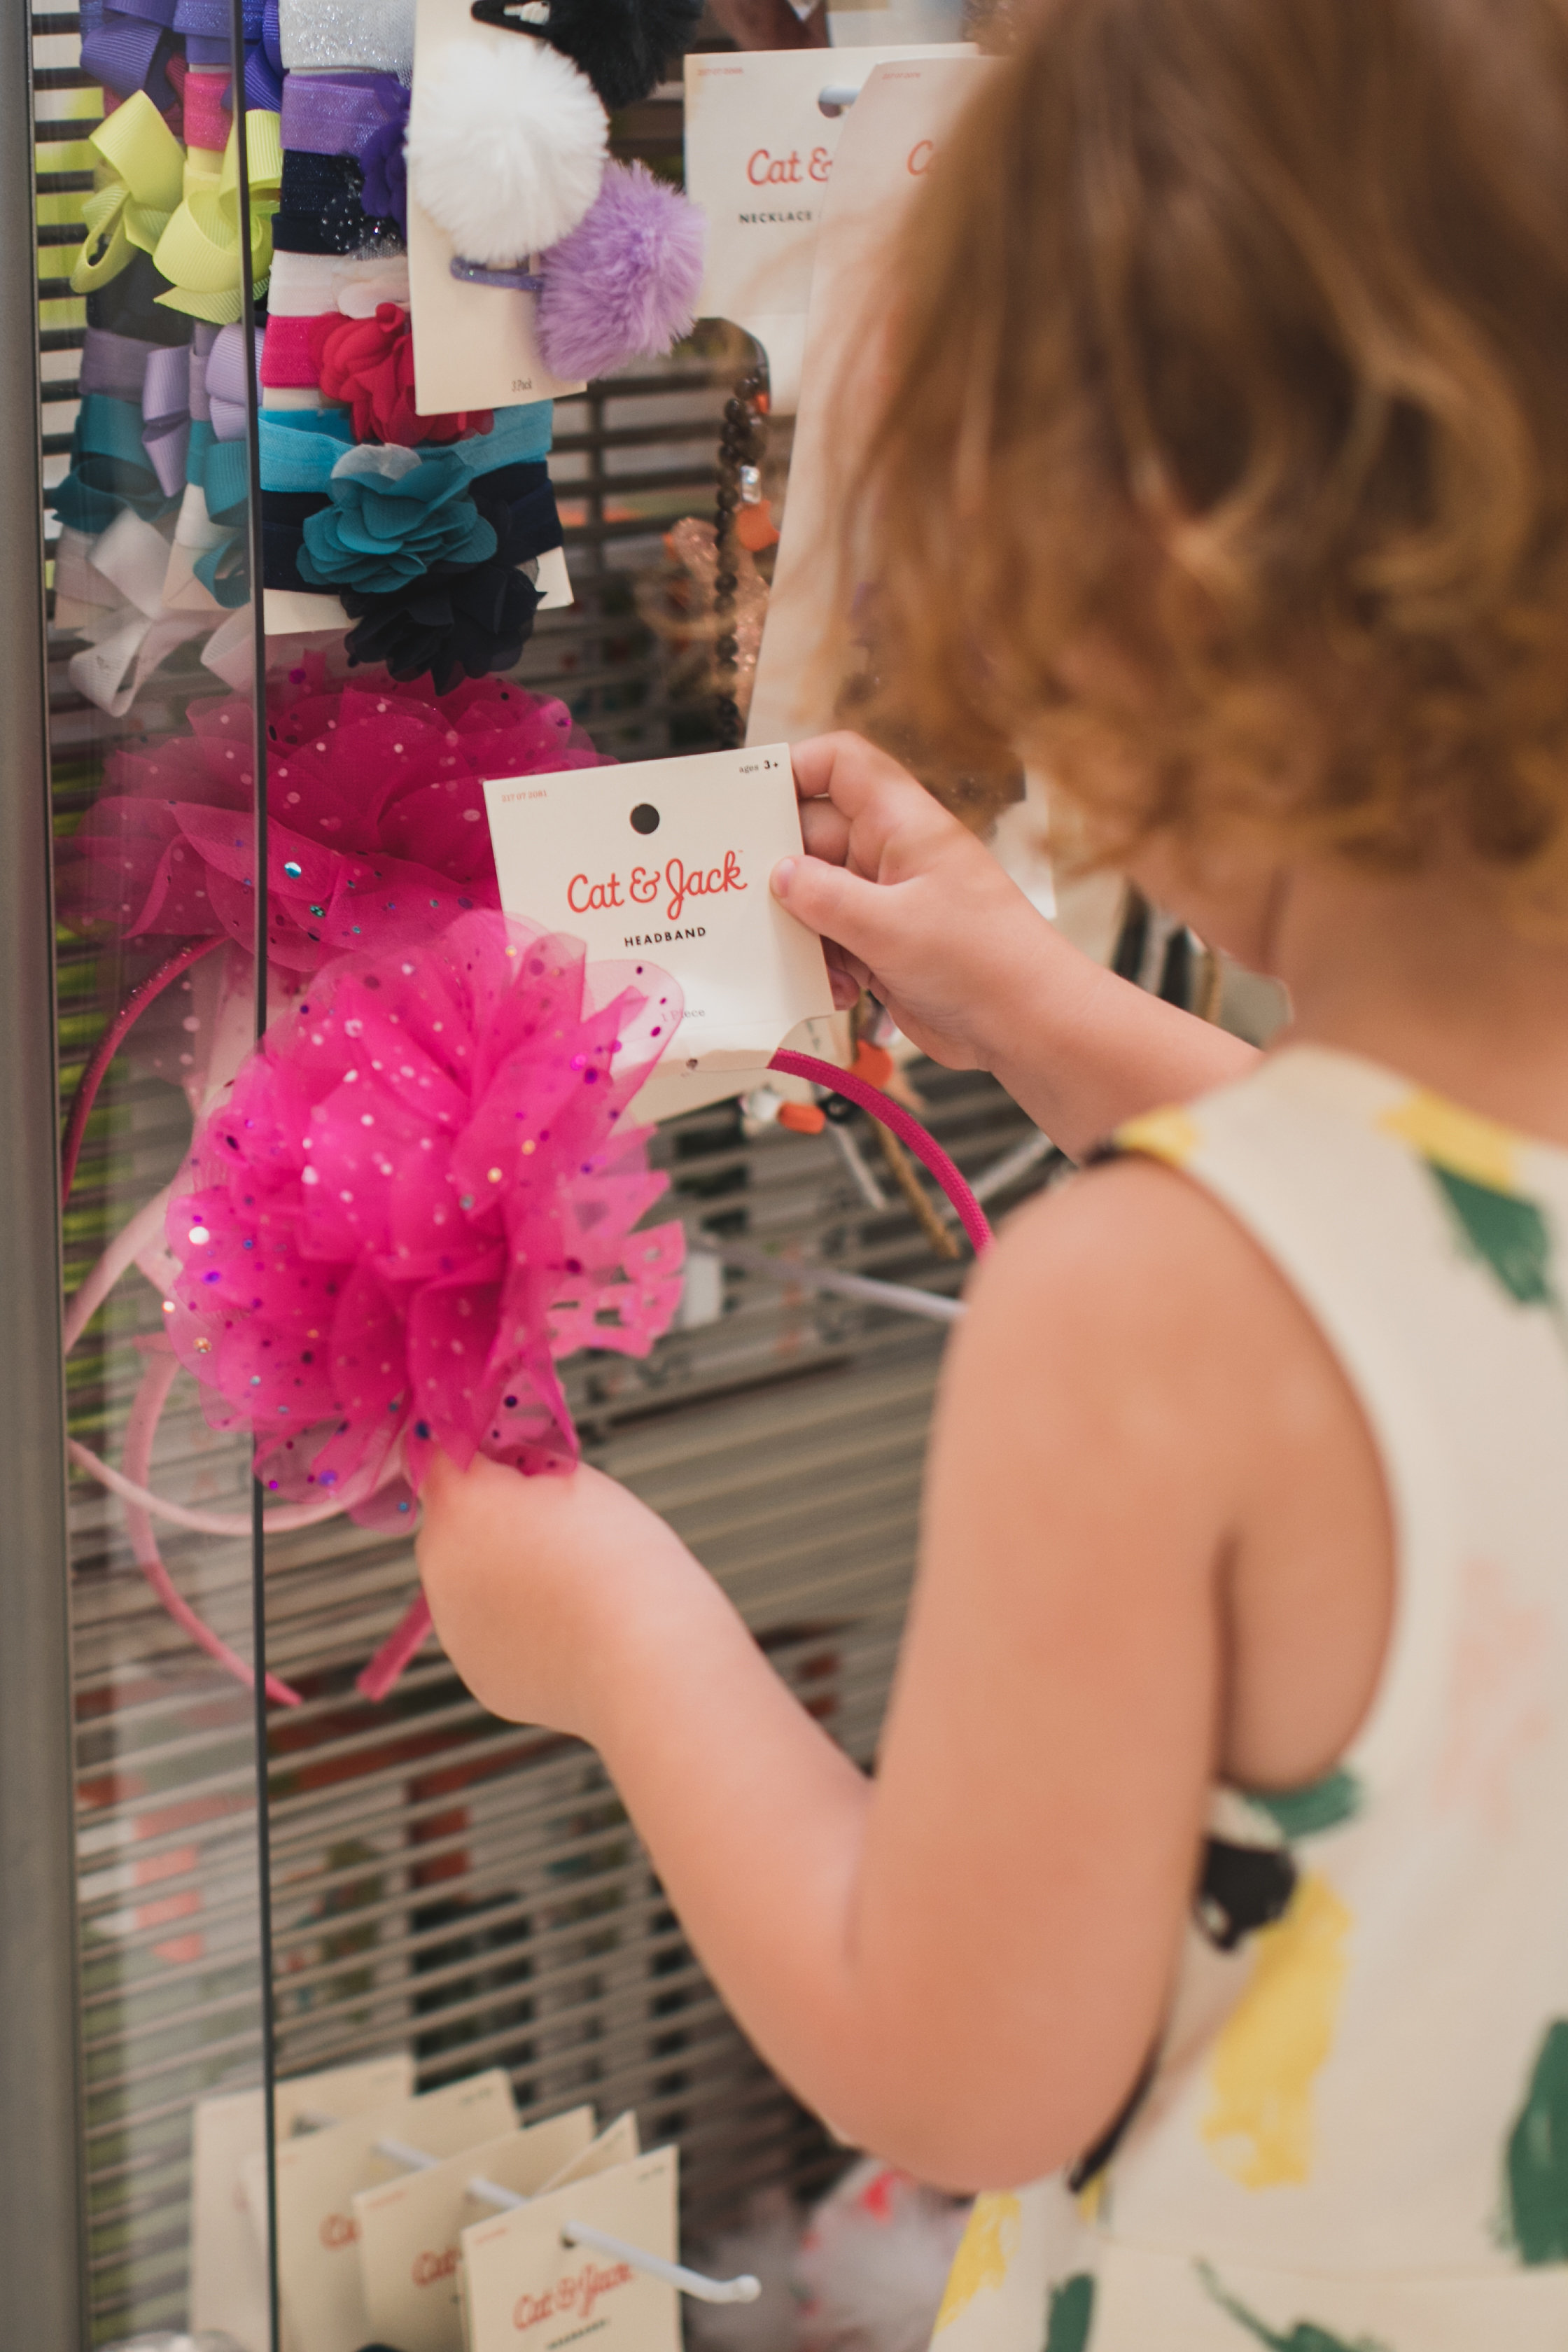 Baby_Boy_Bakery_Target_Lily_Ro_Photography-2405.jpg